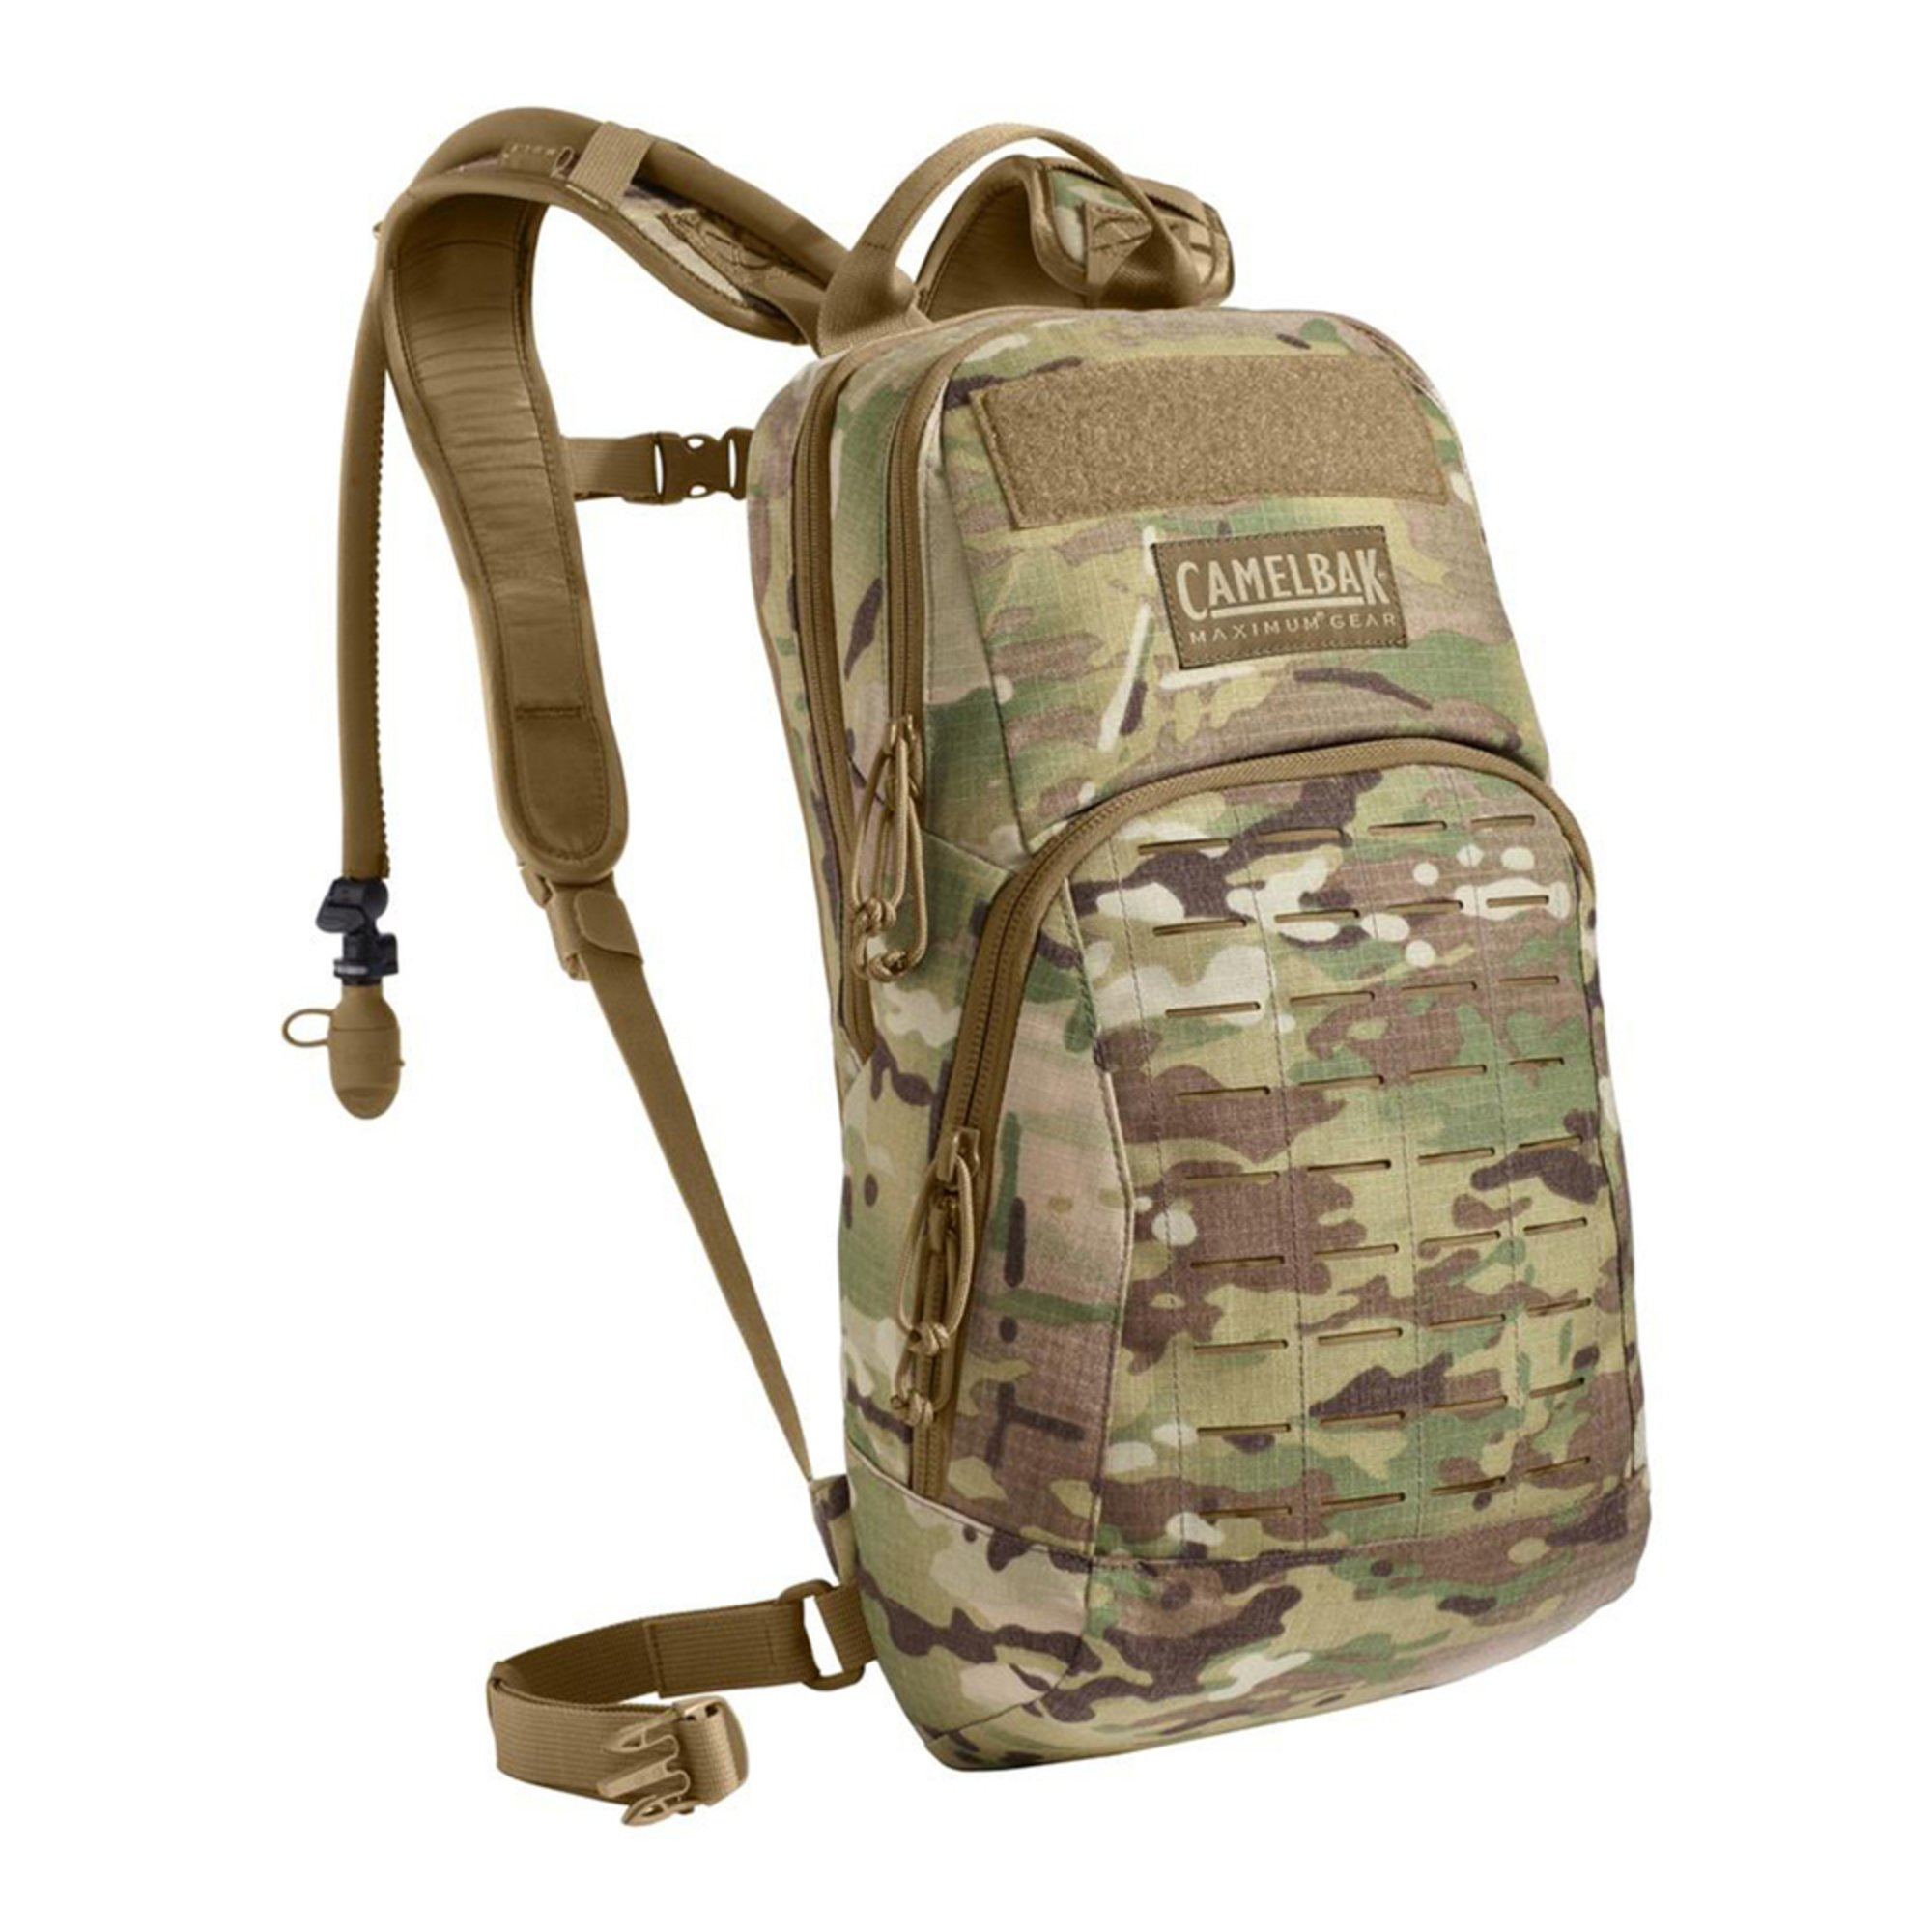 619e7298a98 Camelbak 100 Oz M.u.l.e. Mil Spec Crux Multicam | Hydration Packs | Fitness  - Shop Your Navy Exchange - Official Site